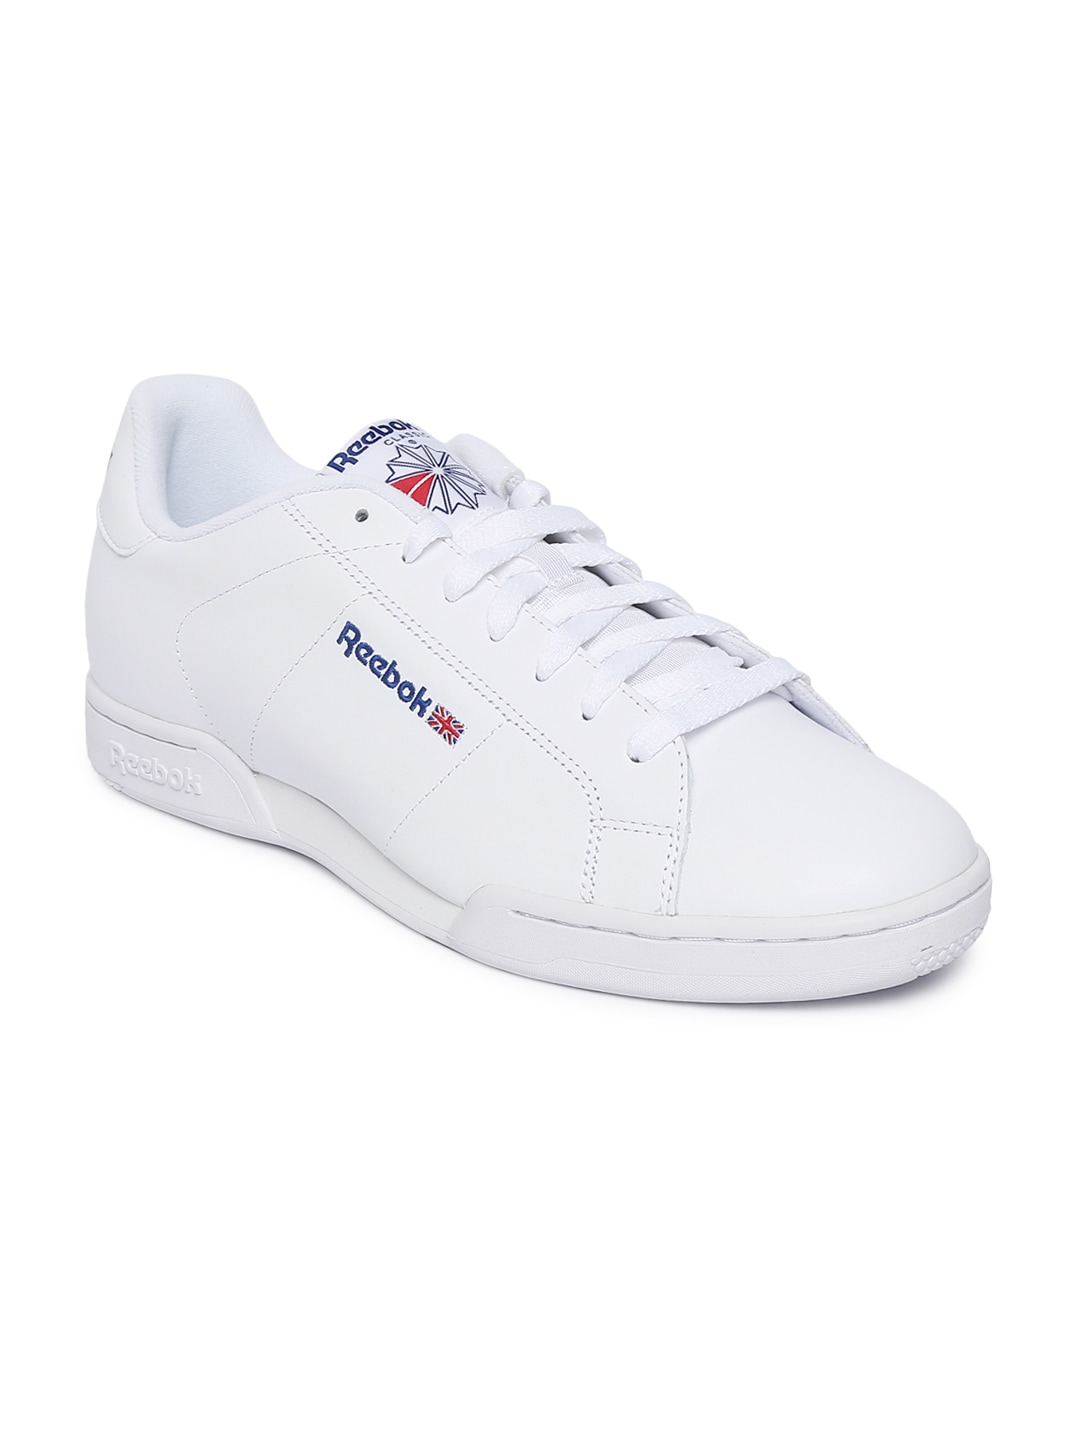 2cd9addafbc48 Reebok Leather Shoes - Buy Reebok Leather Shoes online in India